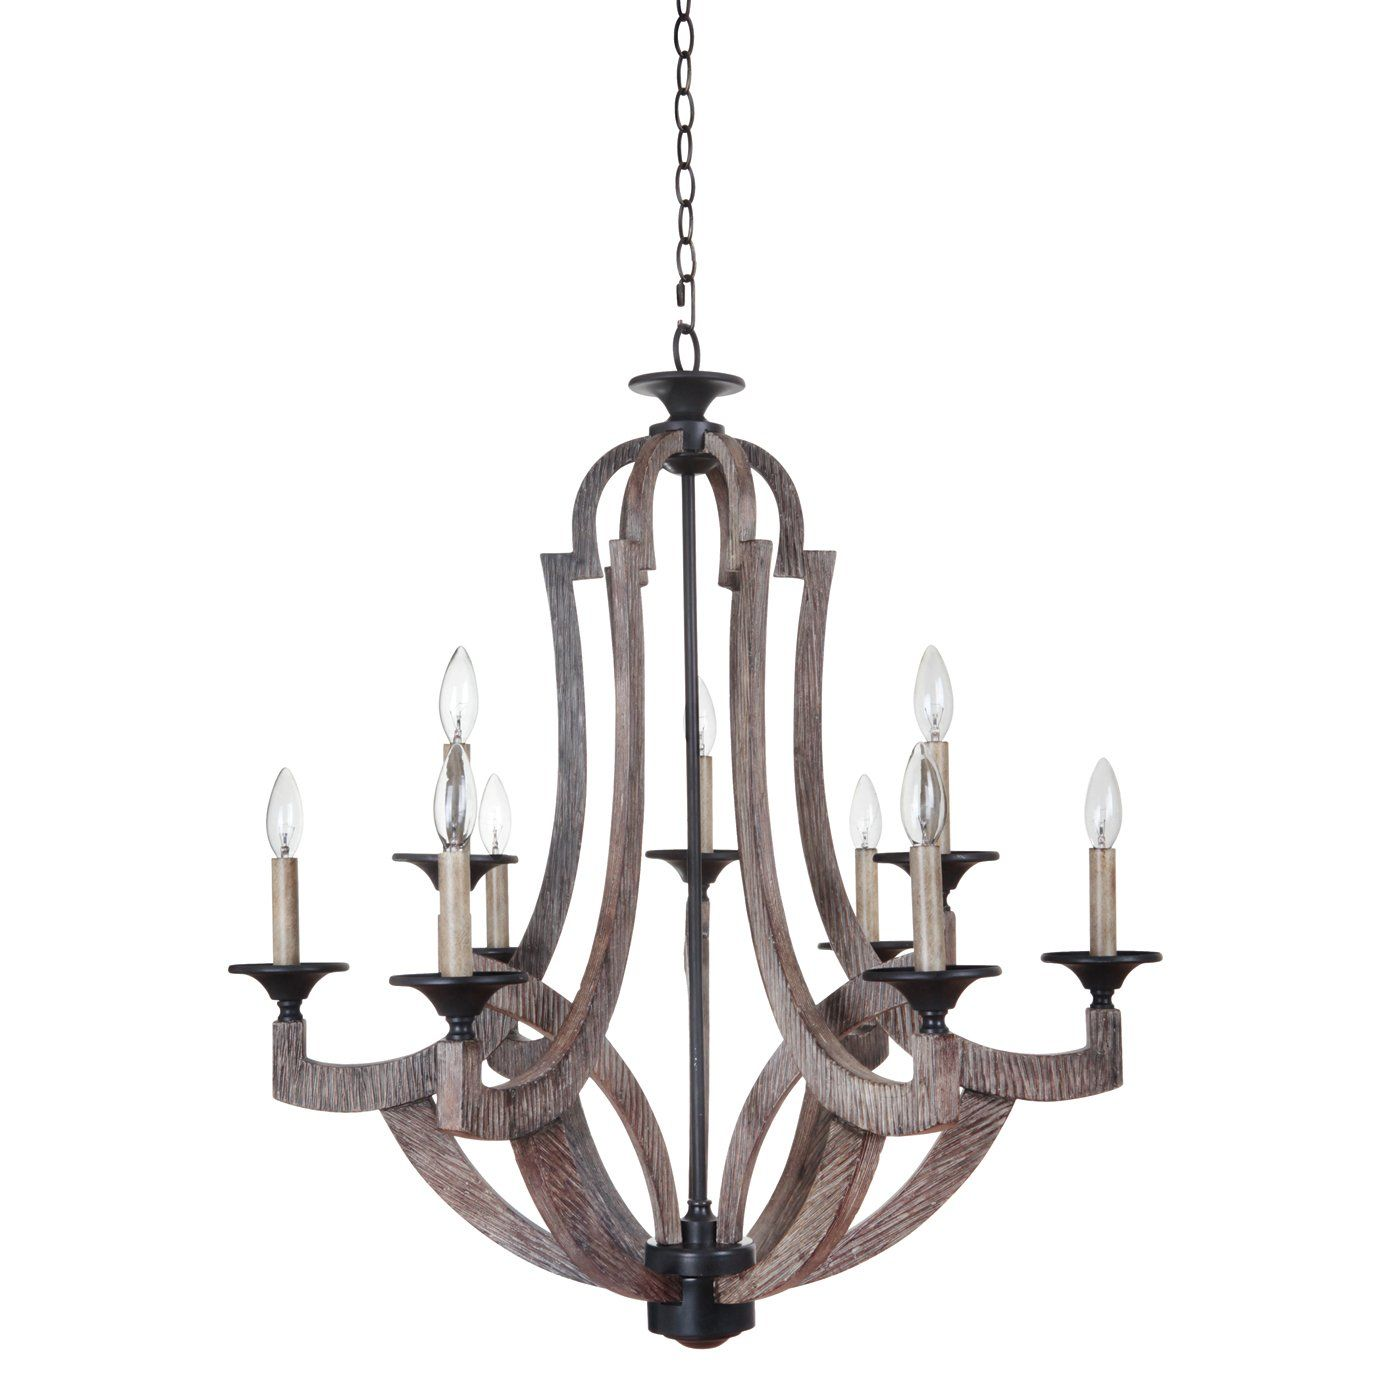 Shop jeremiah lighting 35129 wp winton 9 light chandelier at atg shop jeremiah lighting 35129 wp winton 9 light chandelier at atg stores browse arubaitofo Images